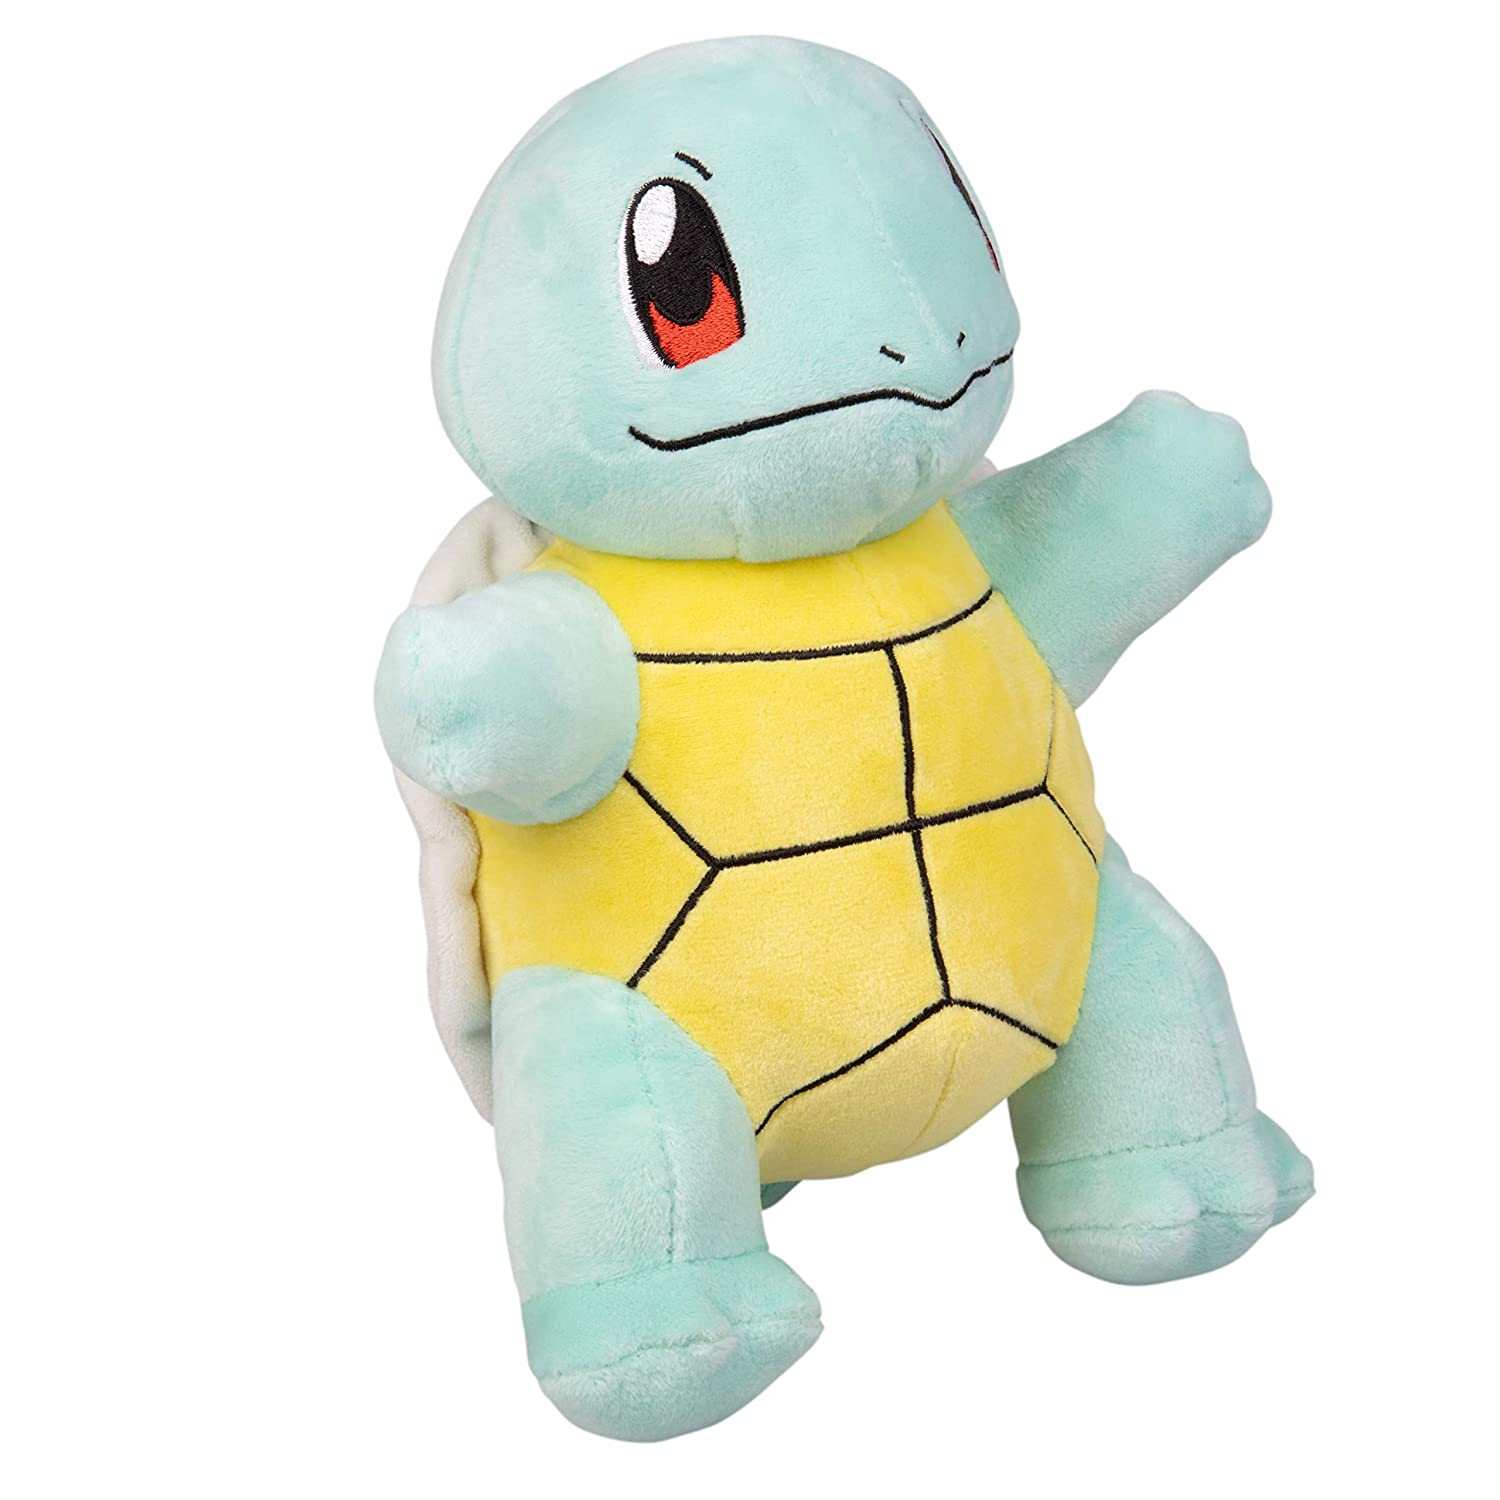 Poké mon Squirtle Plush Stuffed Animal Toy - 8' Wicked Cool Toys